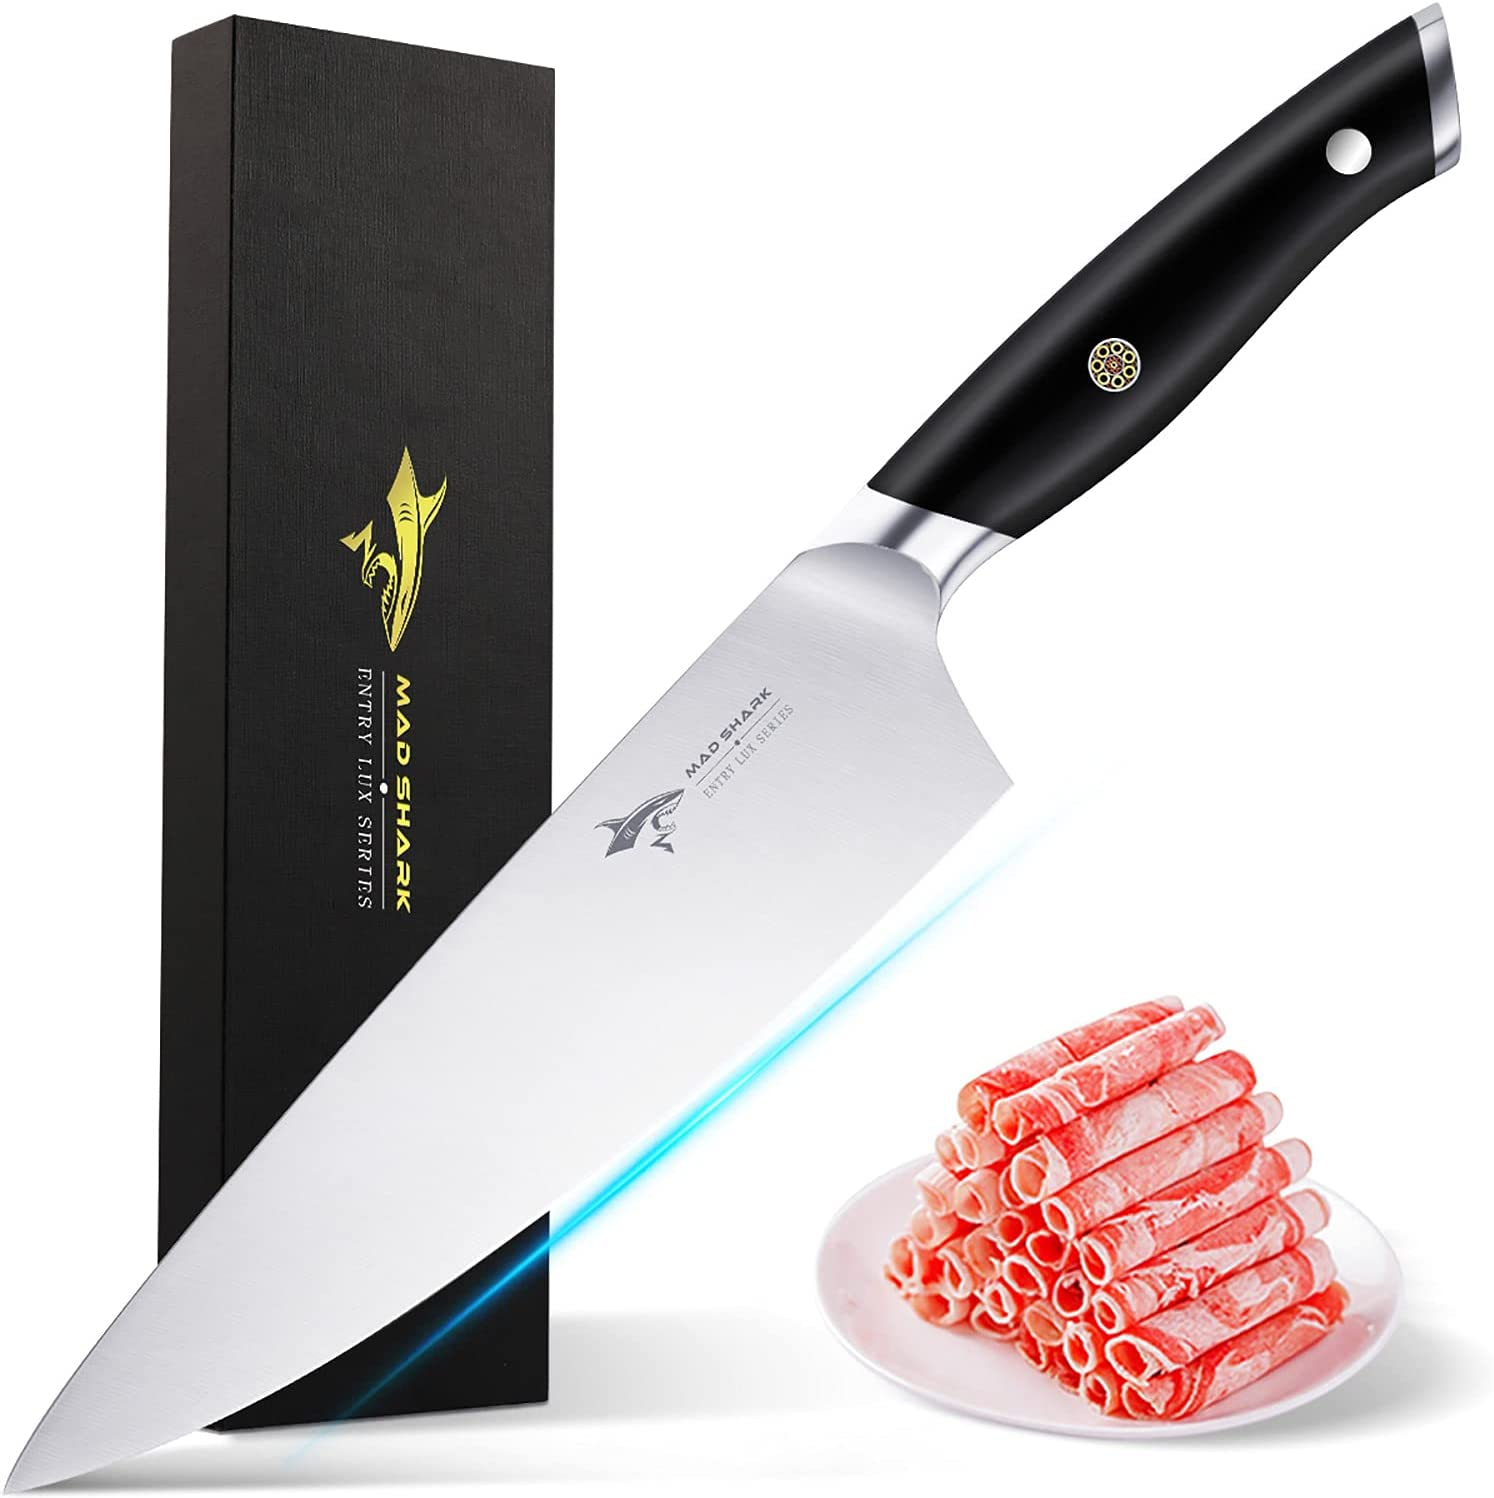 MAD High material SHARK Professional 8 Inch All items free shipping Chef Knife Grade Military German